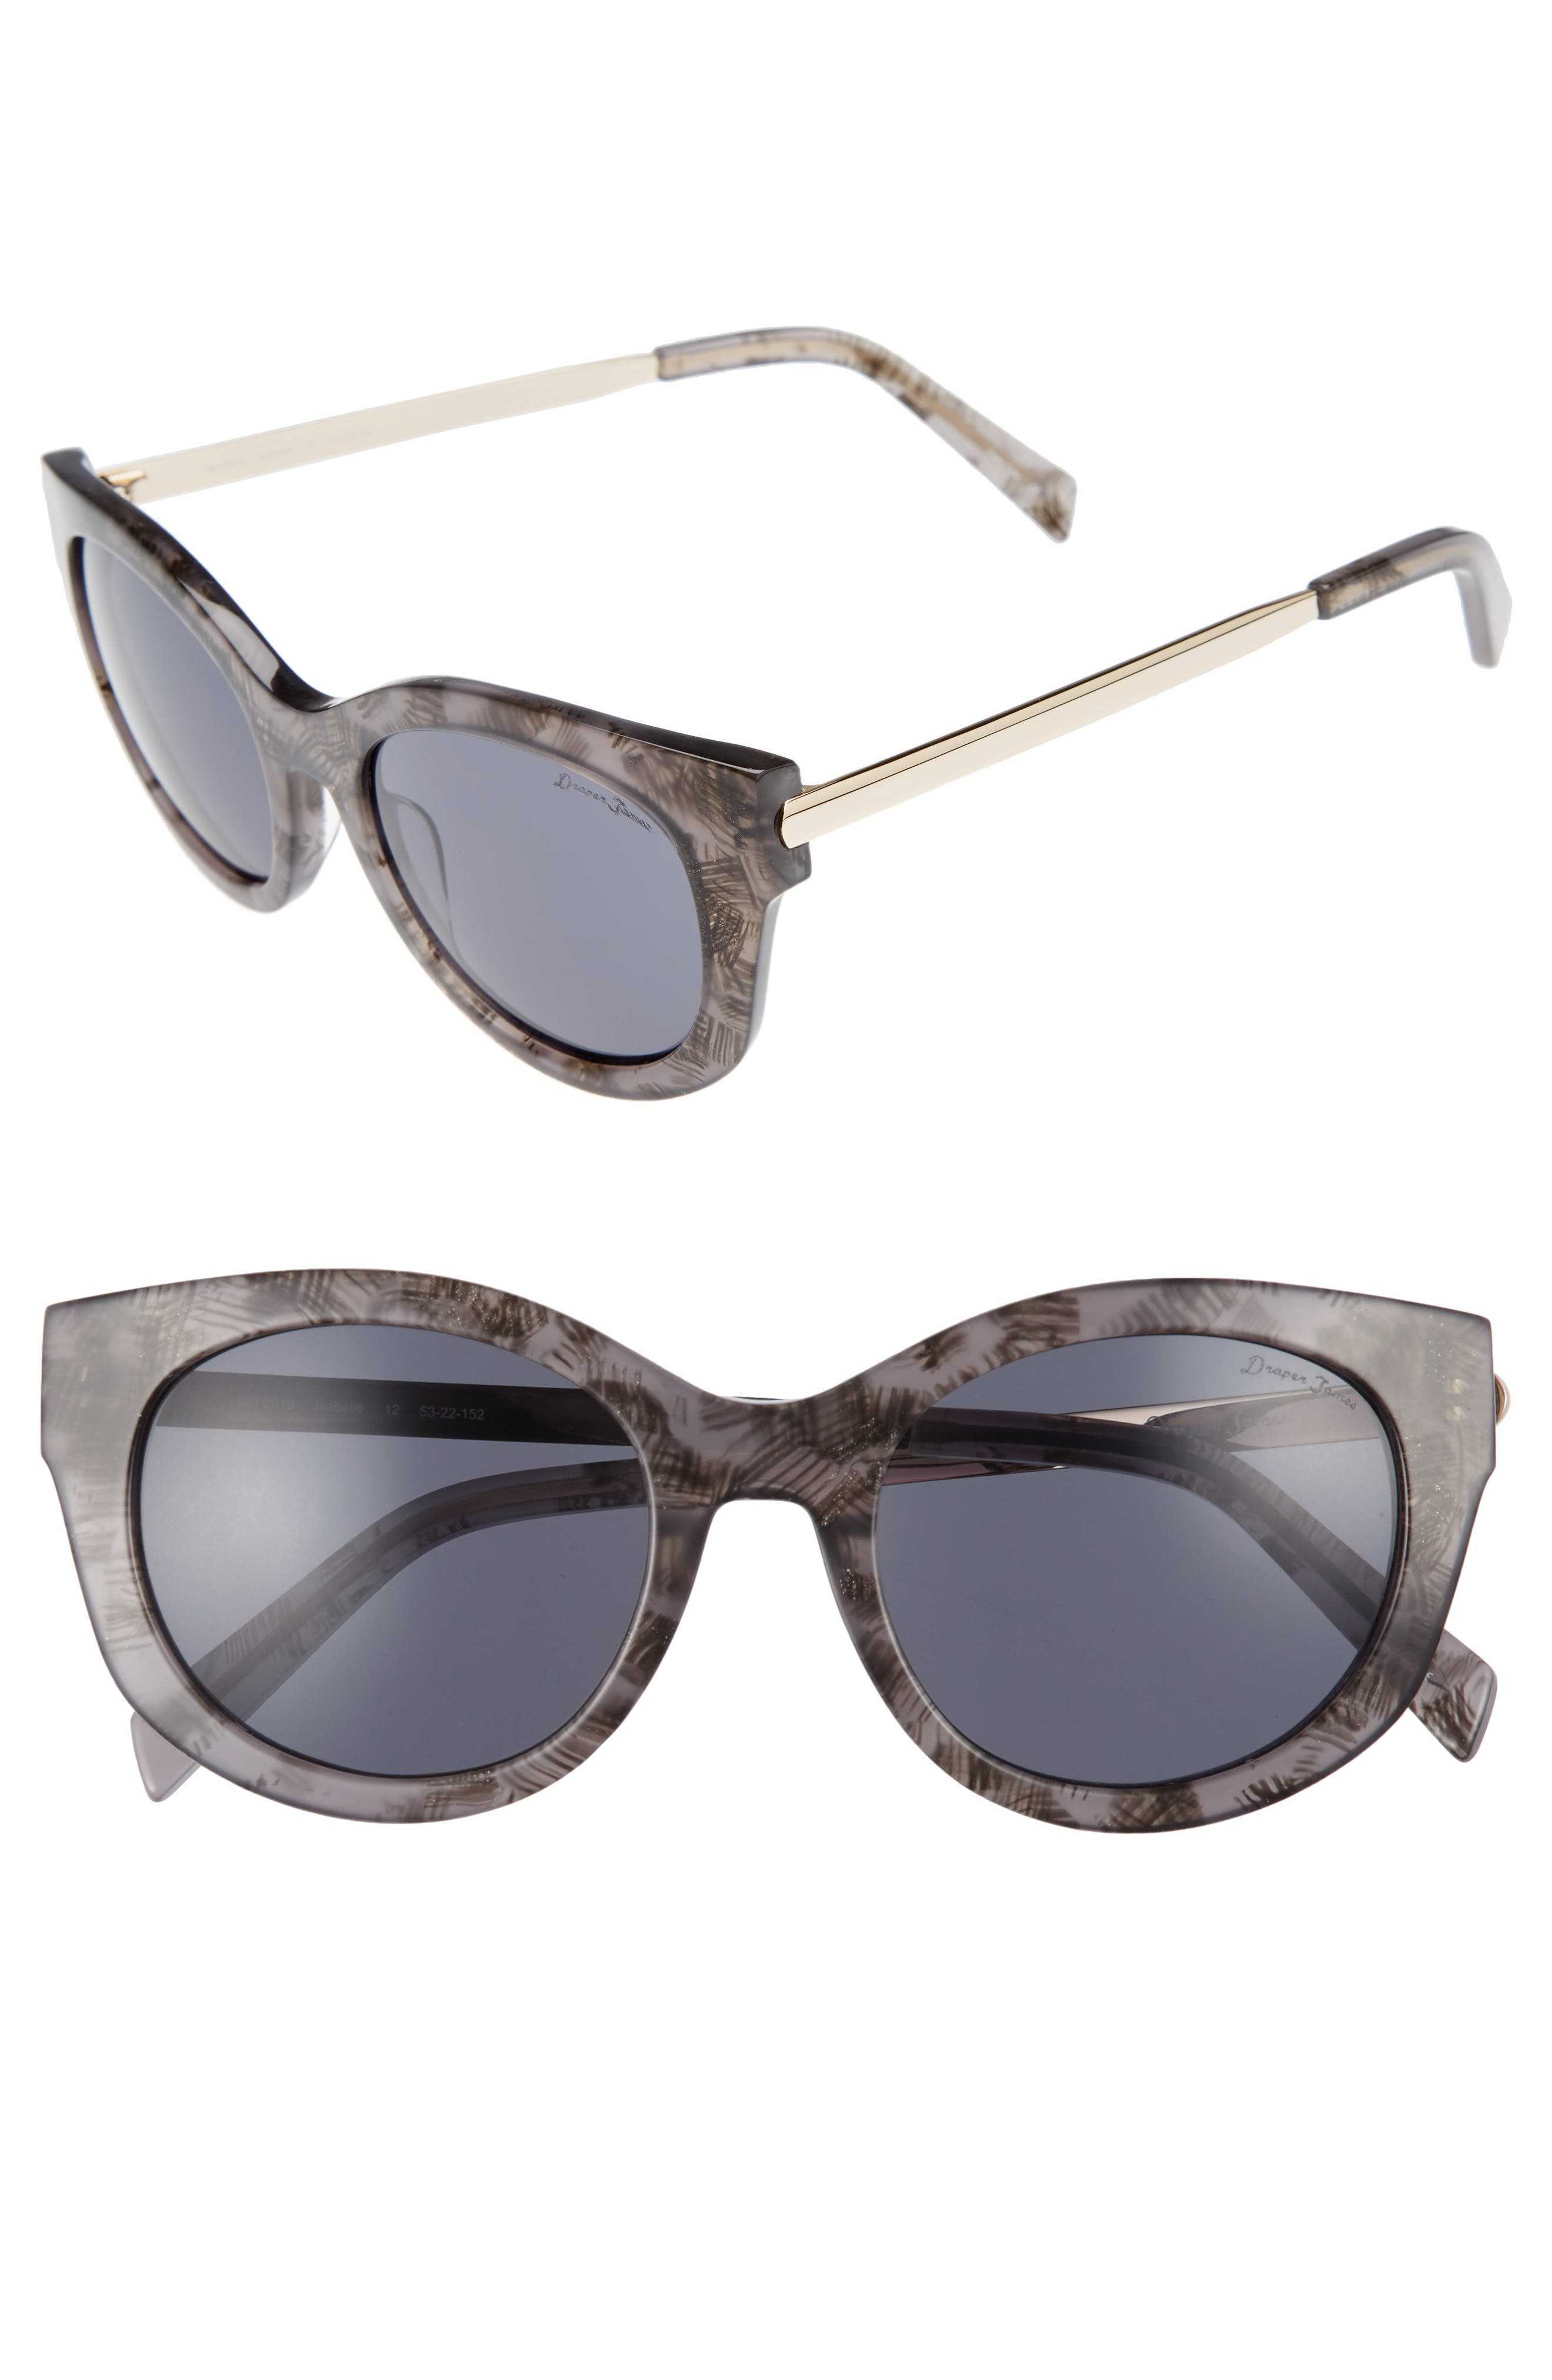 53mm Modified Cat Eye Sunglasses,                         Main,                         color, Grey